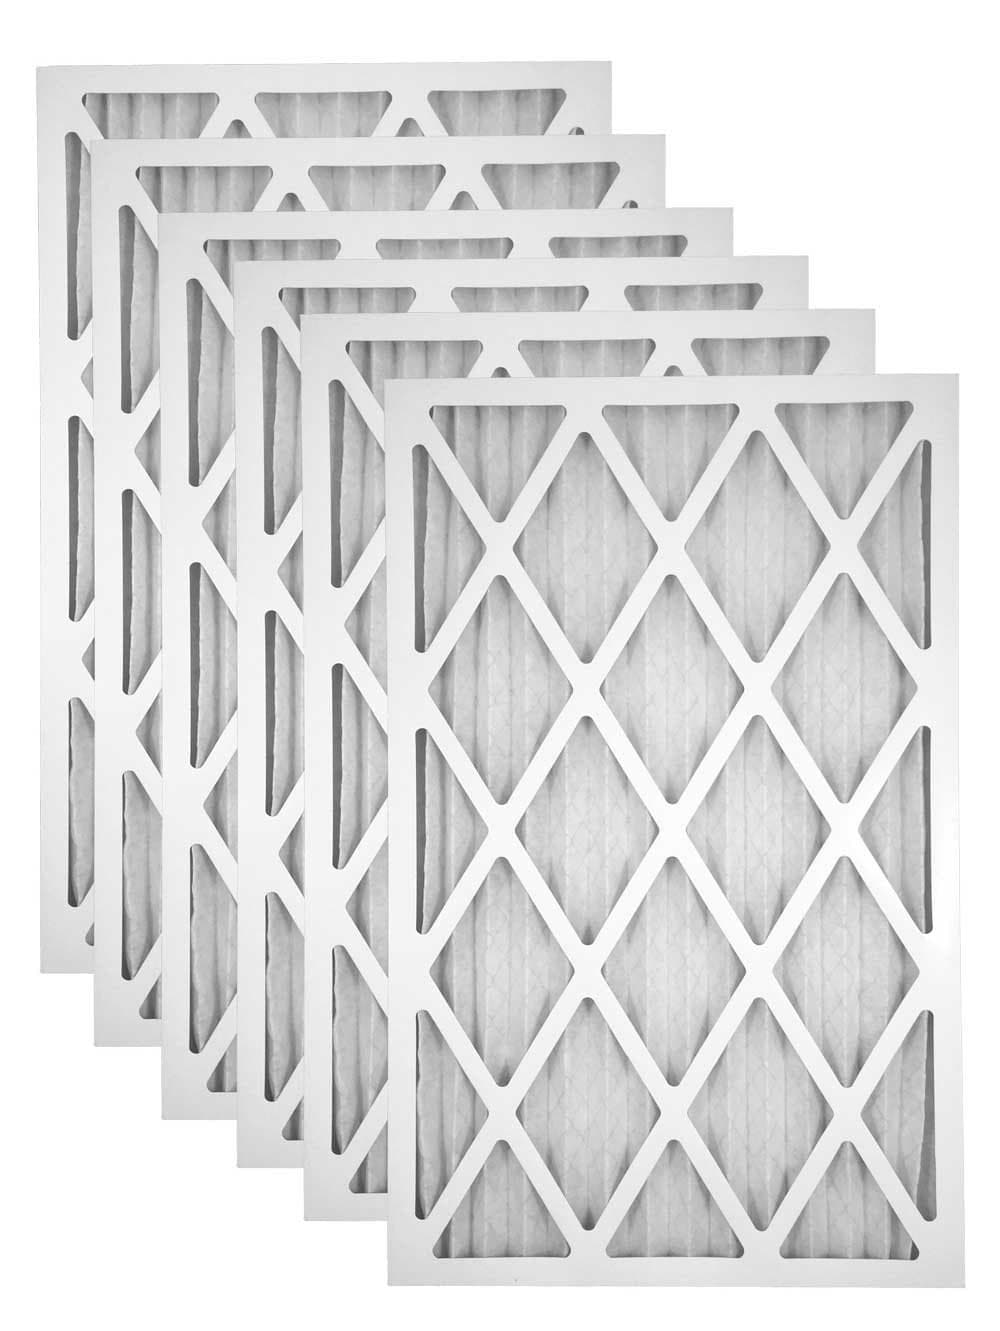 20x25x1 Merv 8 Pleated AC Furnace Filter - Case of 6 by Atomic Filters